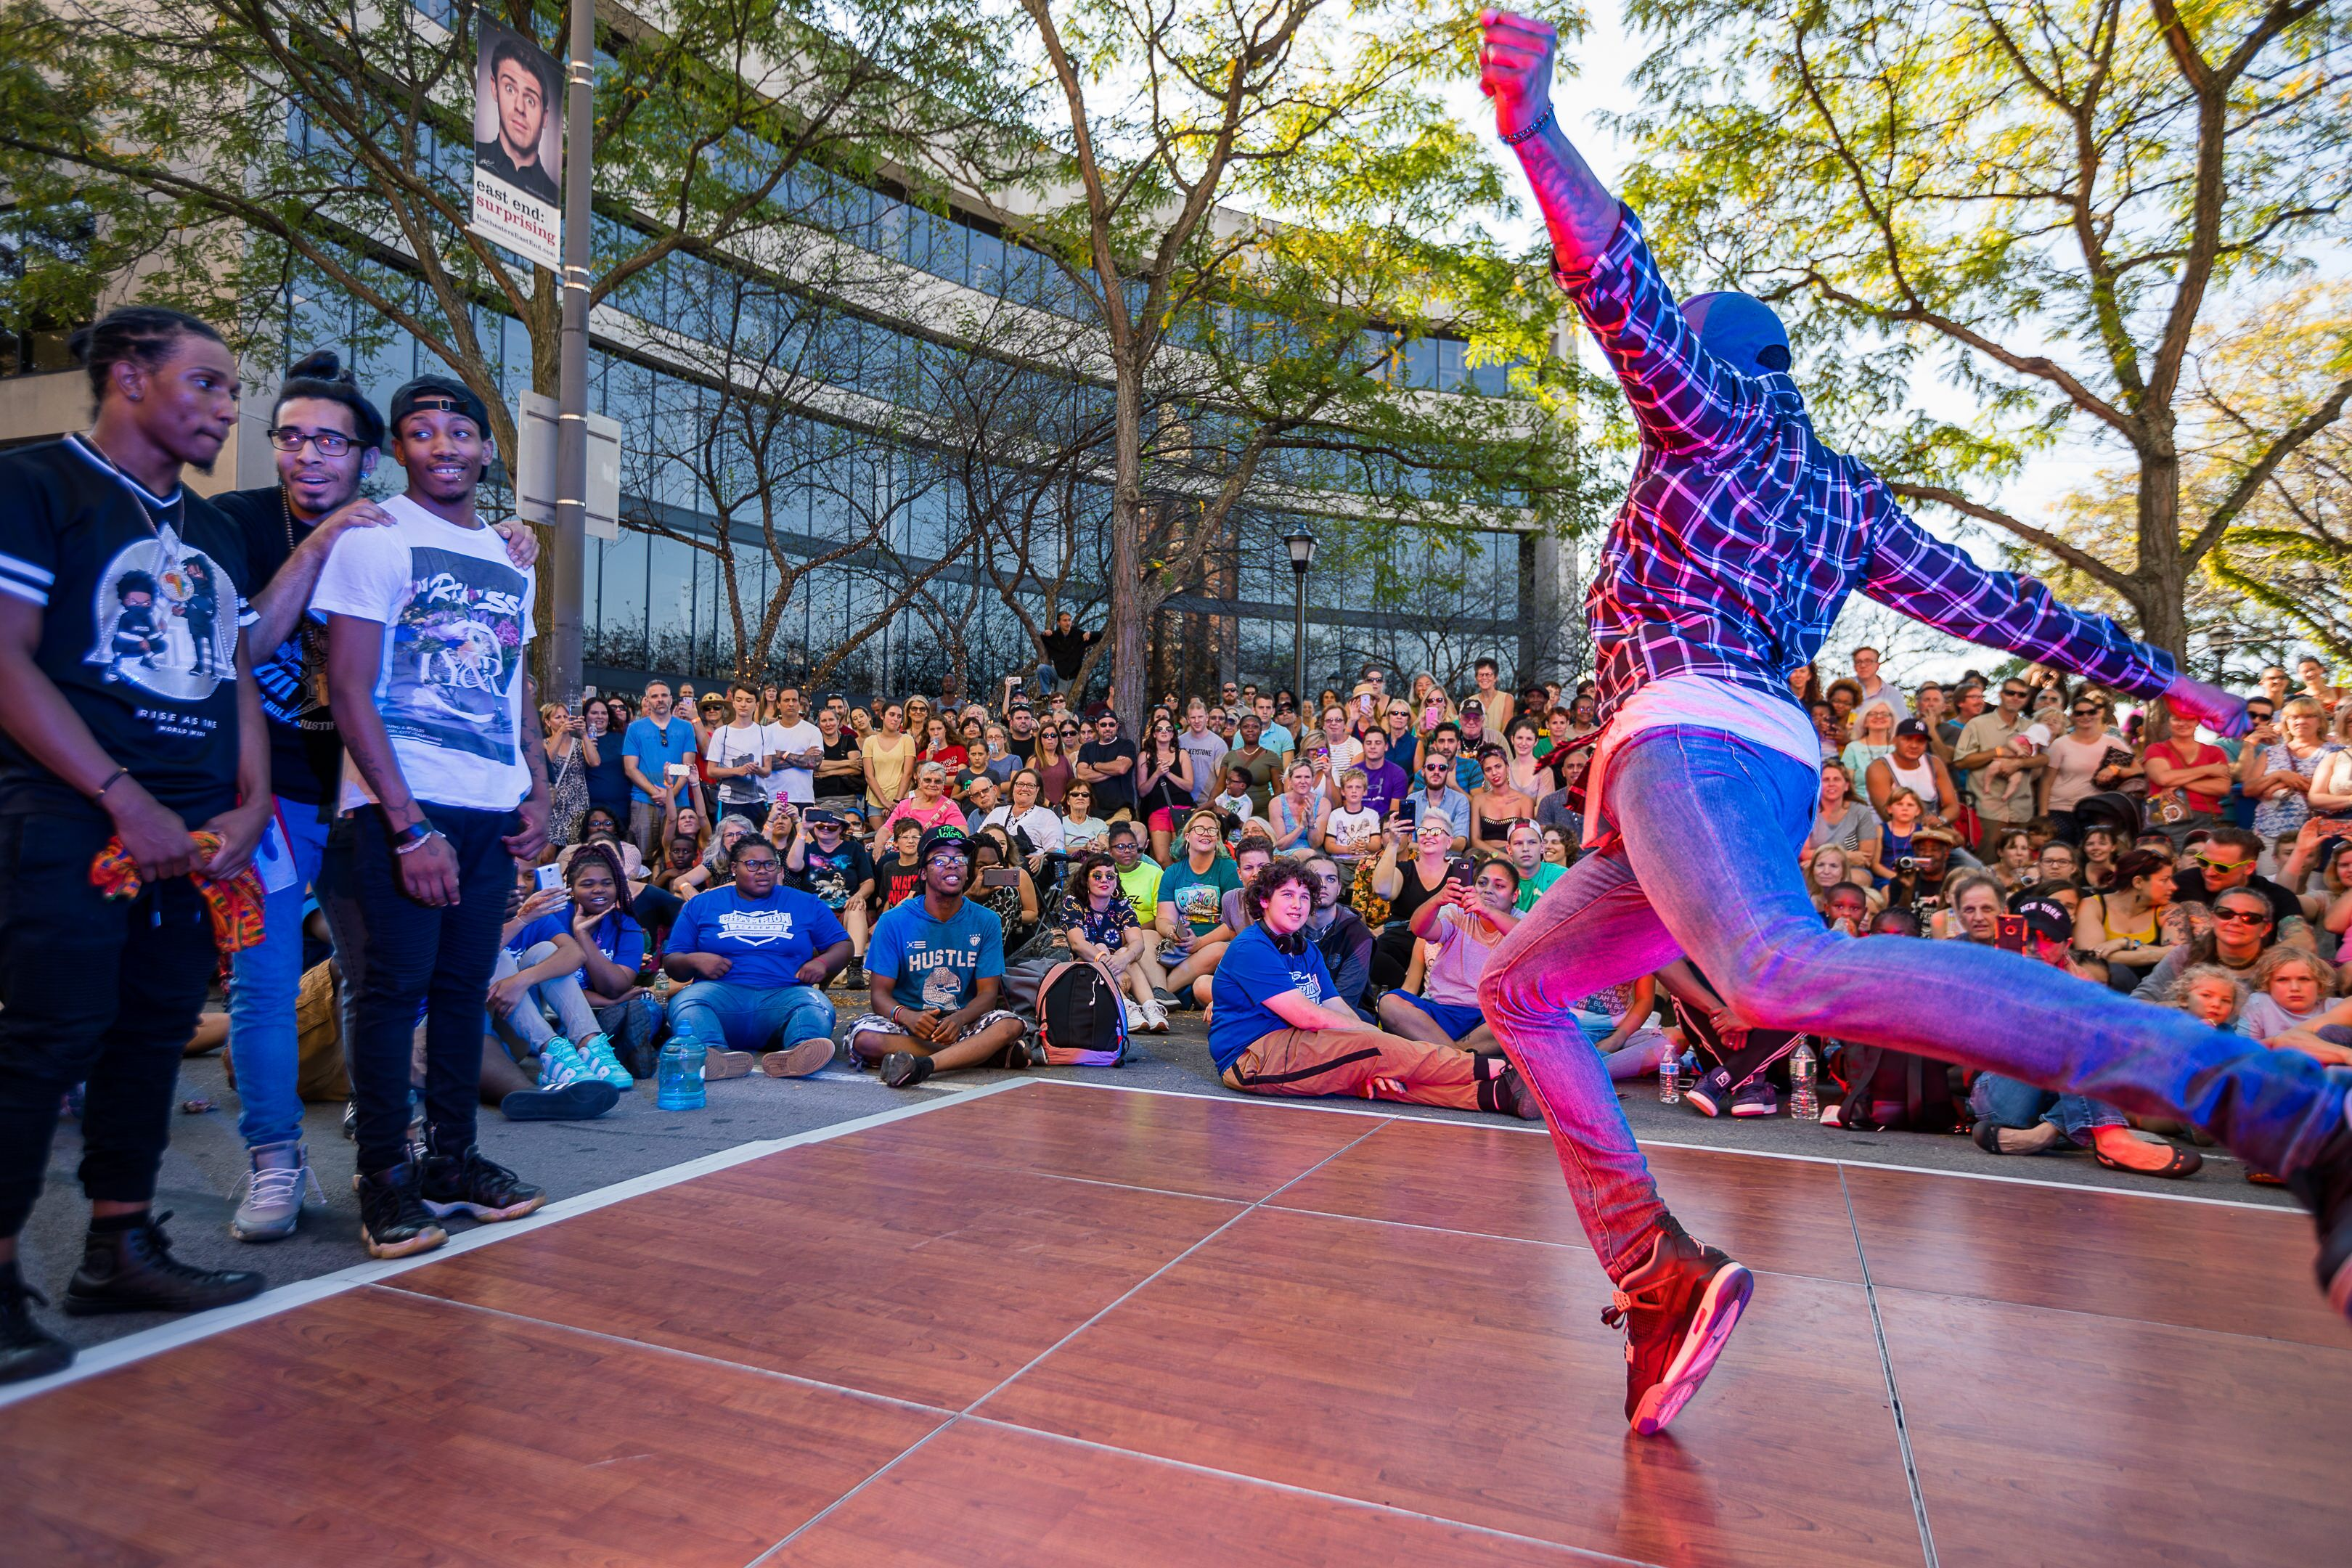 3.	KeyBank Rochester Fringe Festival's annual, free Fringe Street Beat attracts dance crews from all over the Northeast.